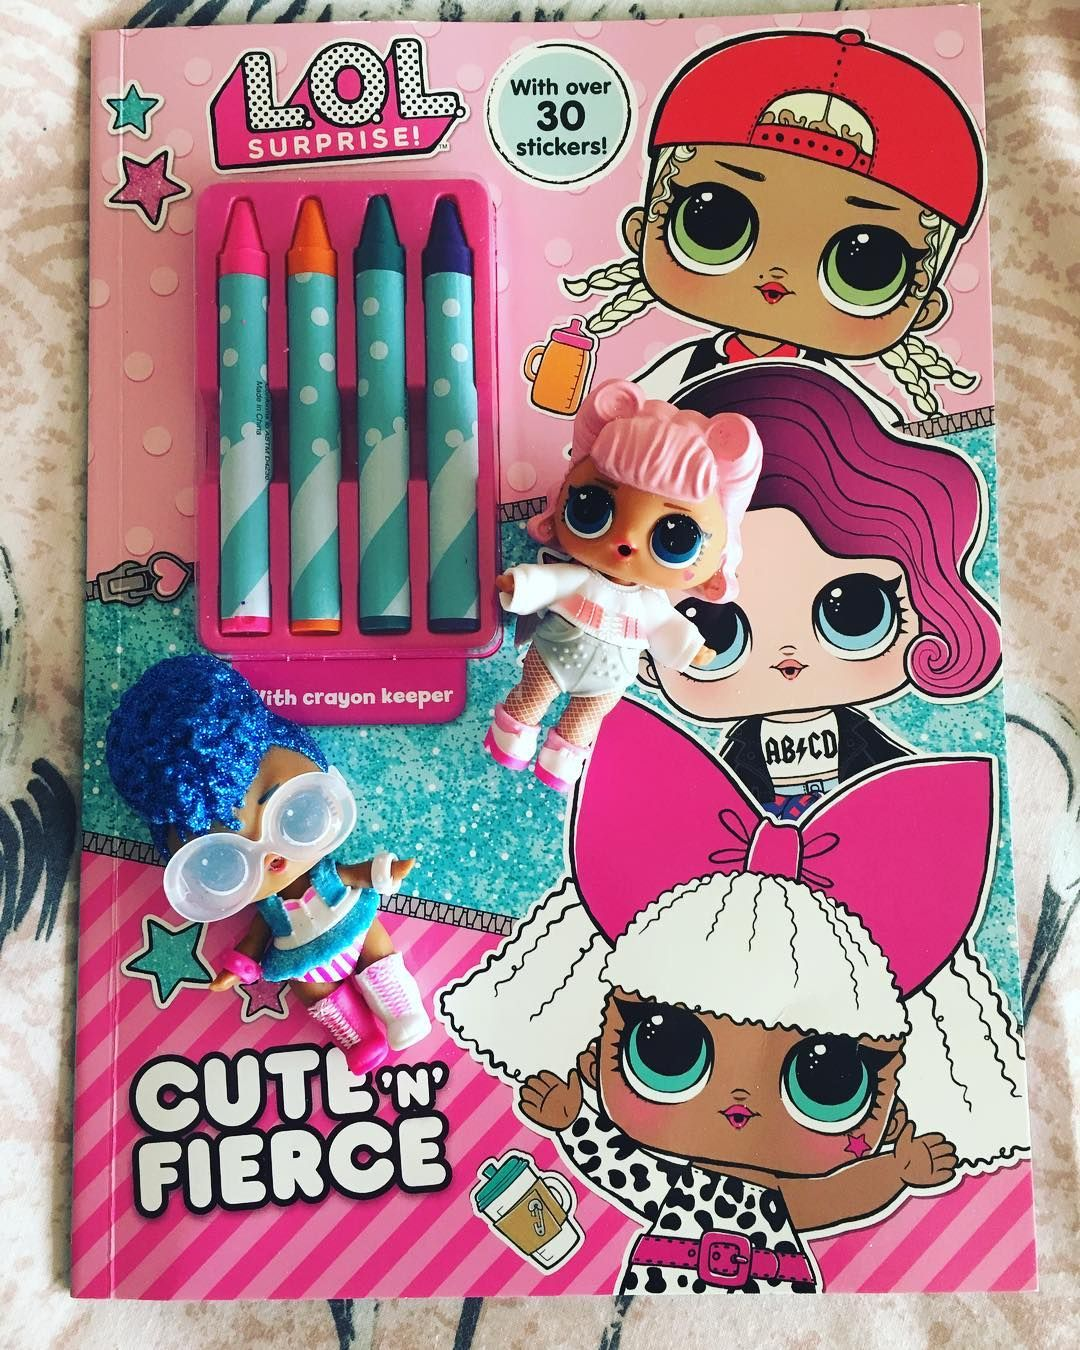 We Found Another New Lol Surprise Colouring Book With Crayons This Time From Theworksstores This Was Really Cool We Lo Fun Crafts For Kids Lol Dolls Elsa Toys